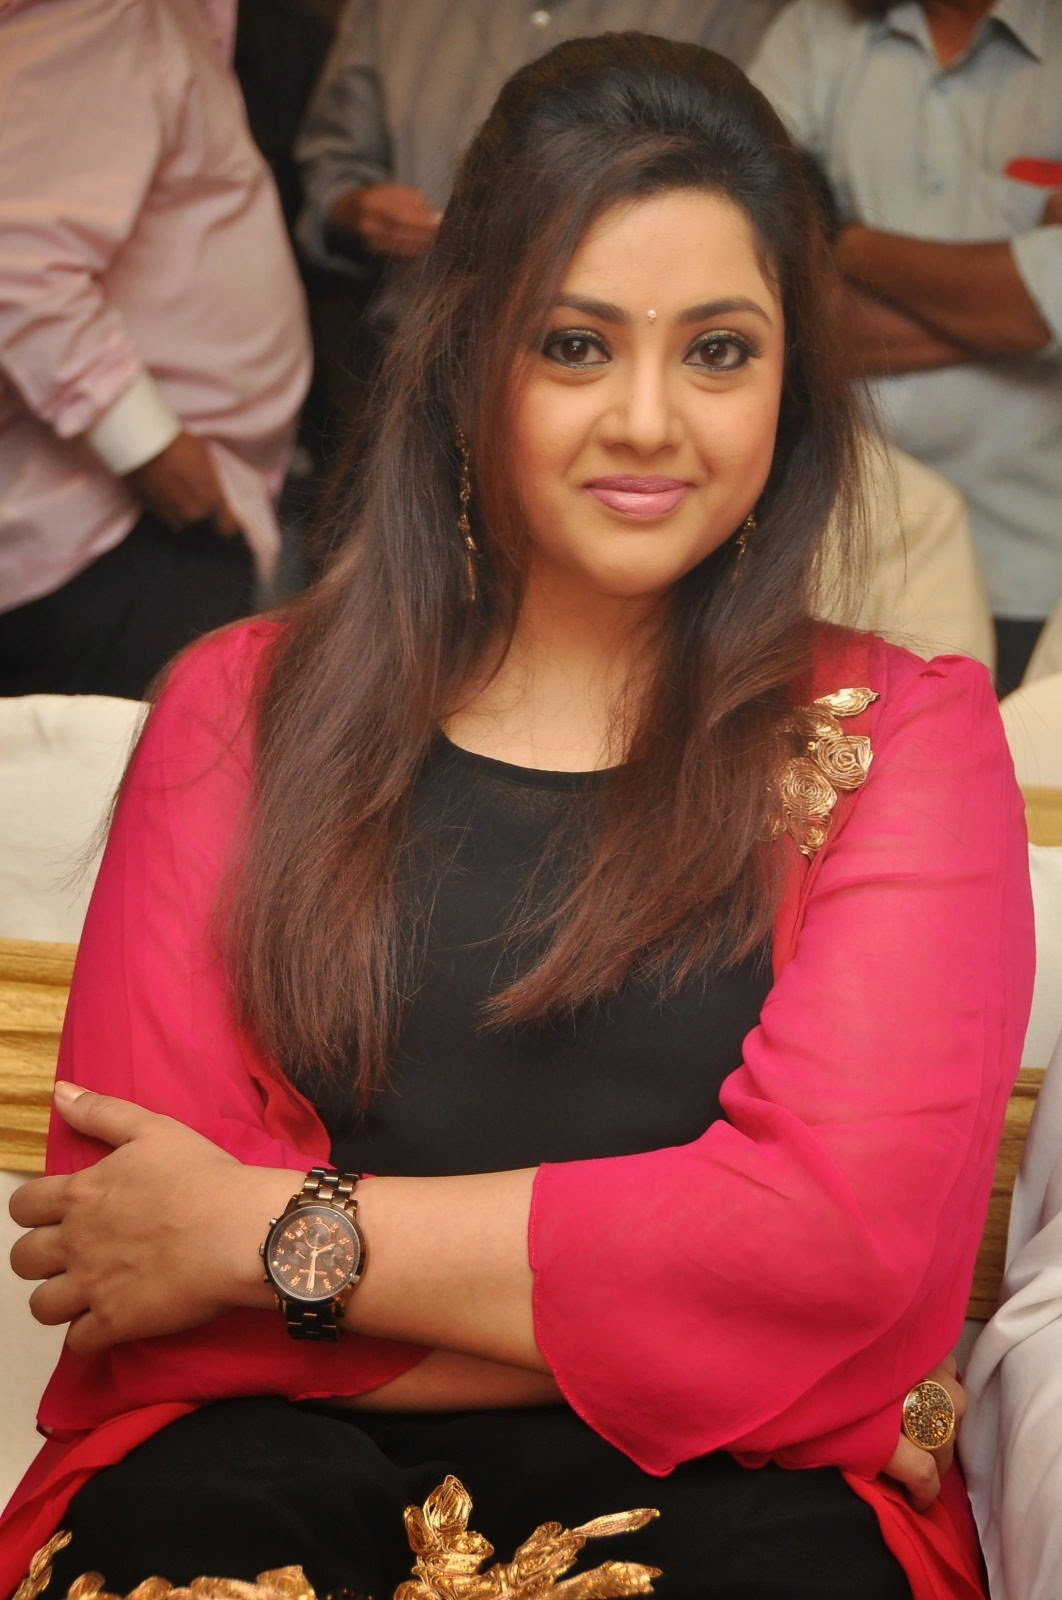 Glamorous Meena Chubby Face Photos In Black Dress